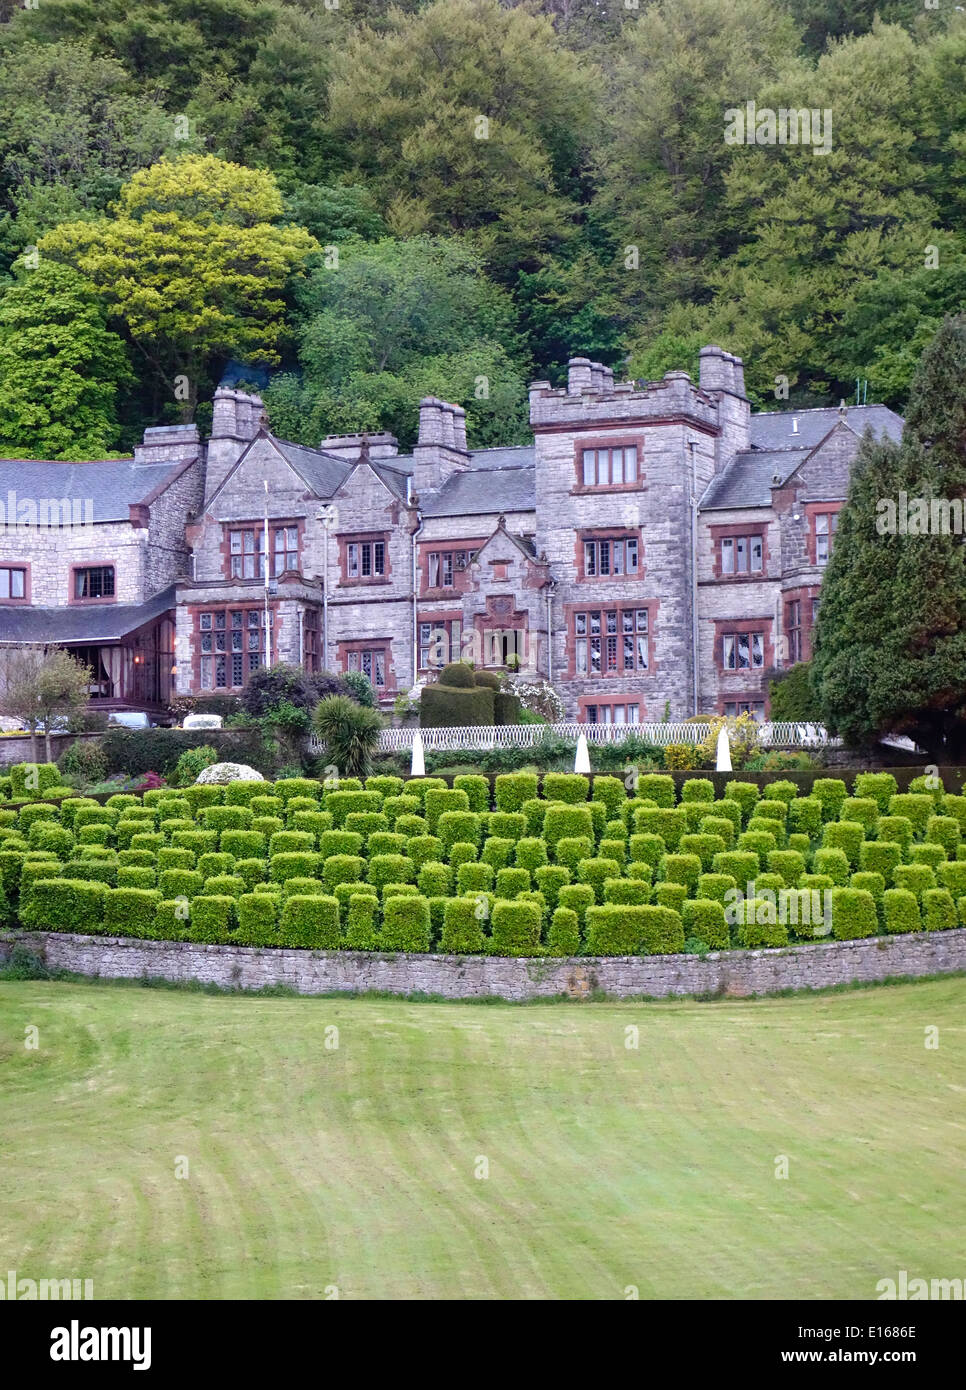 The Grange Hotel High Resolution Stock Photography And Images Alamy